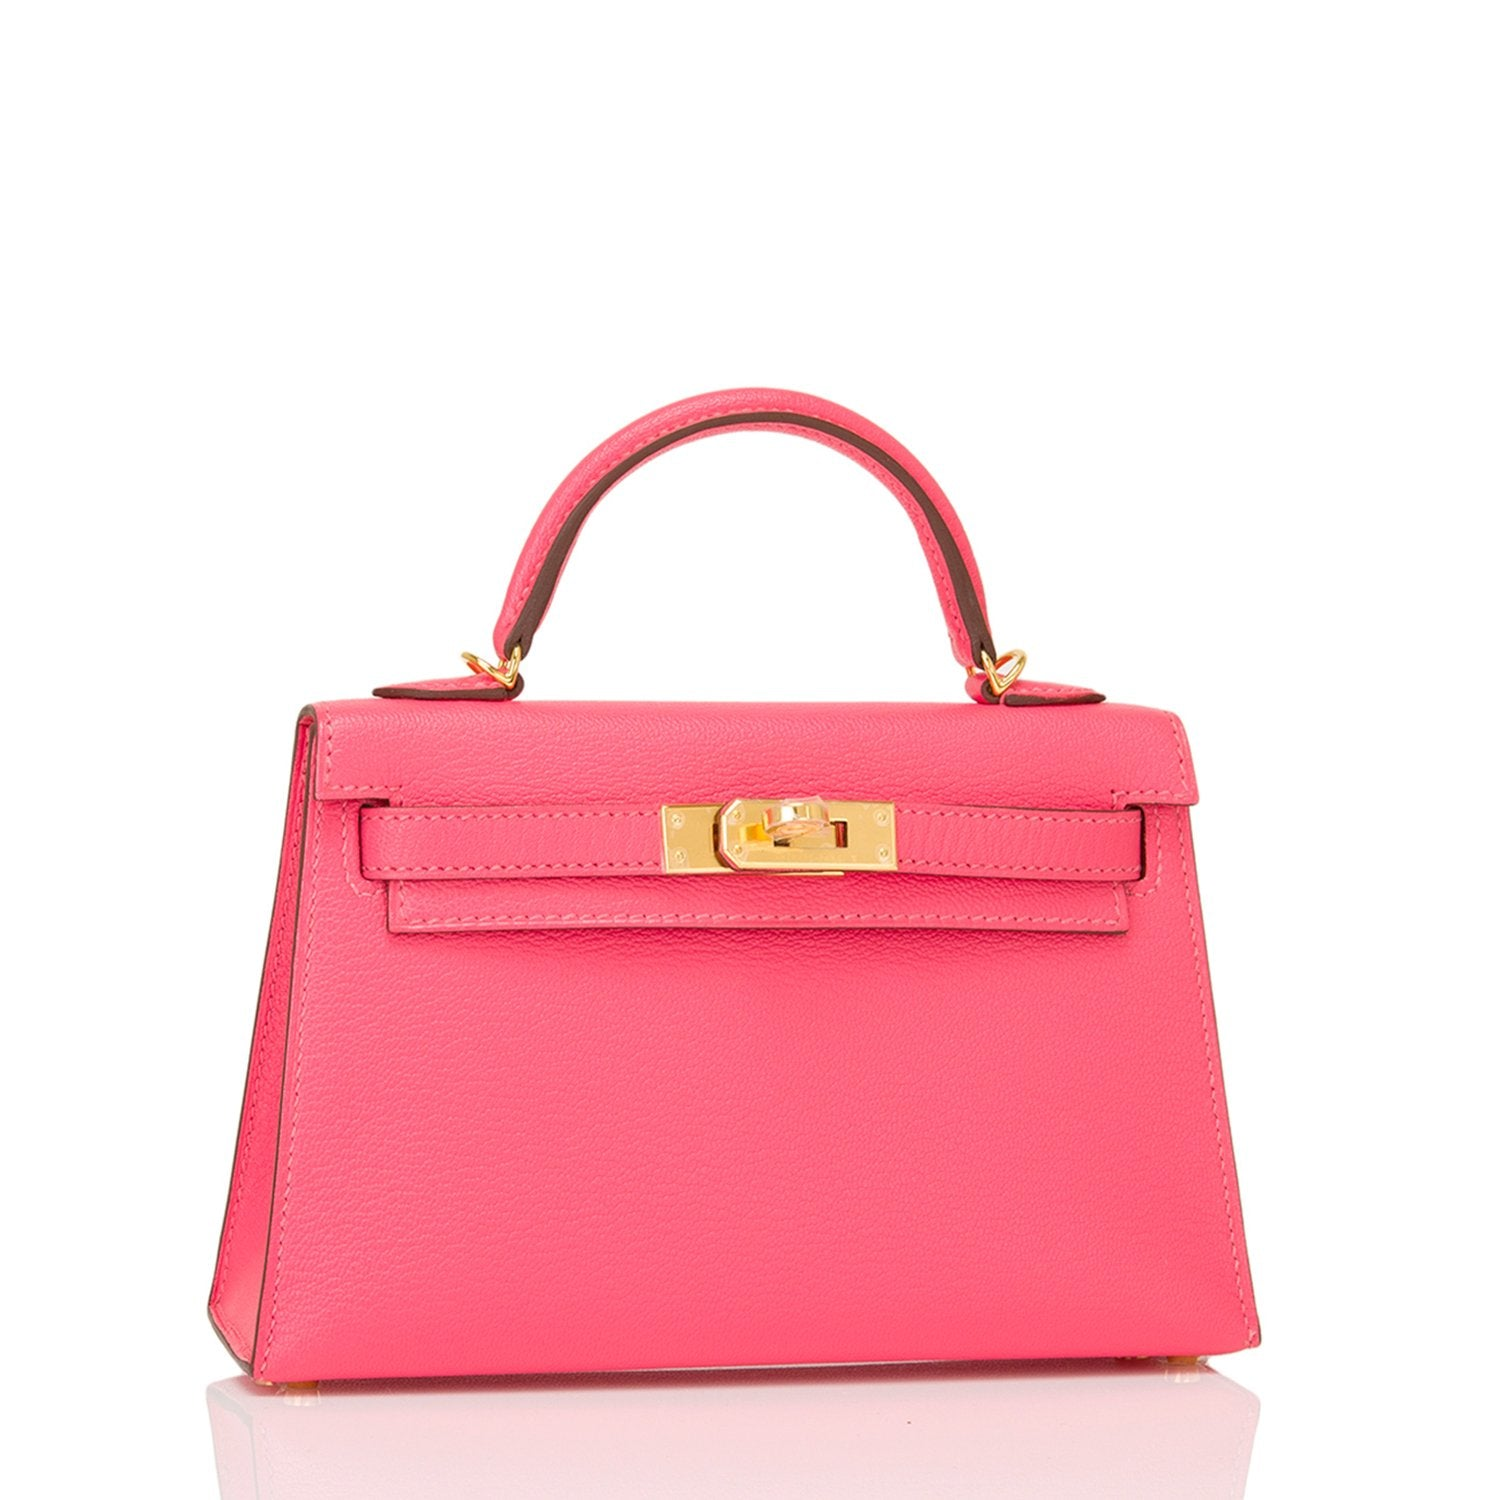 Hermes Rose Lipstick Chevre Mysore Kelly 20cm Gold Hardware